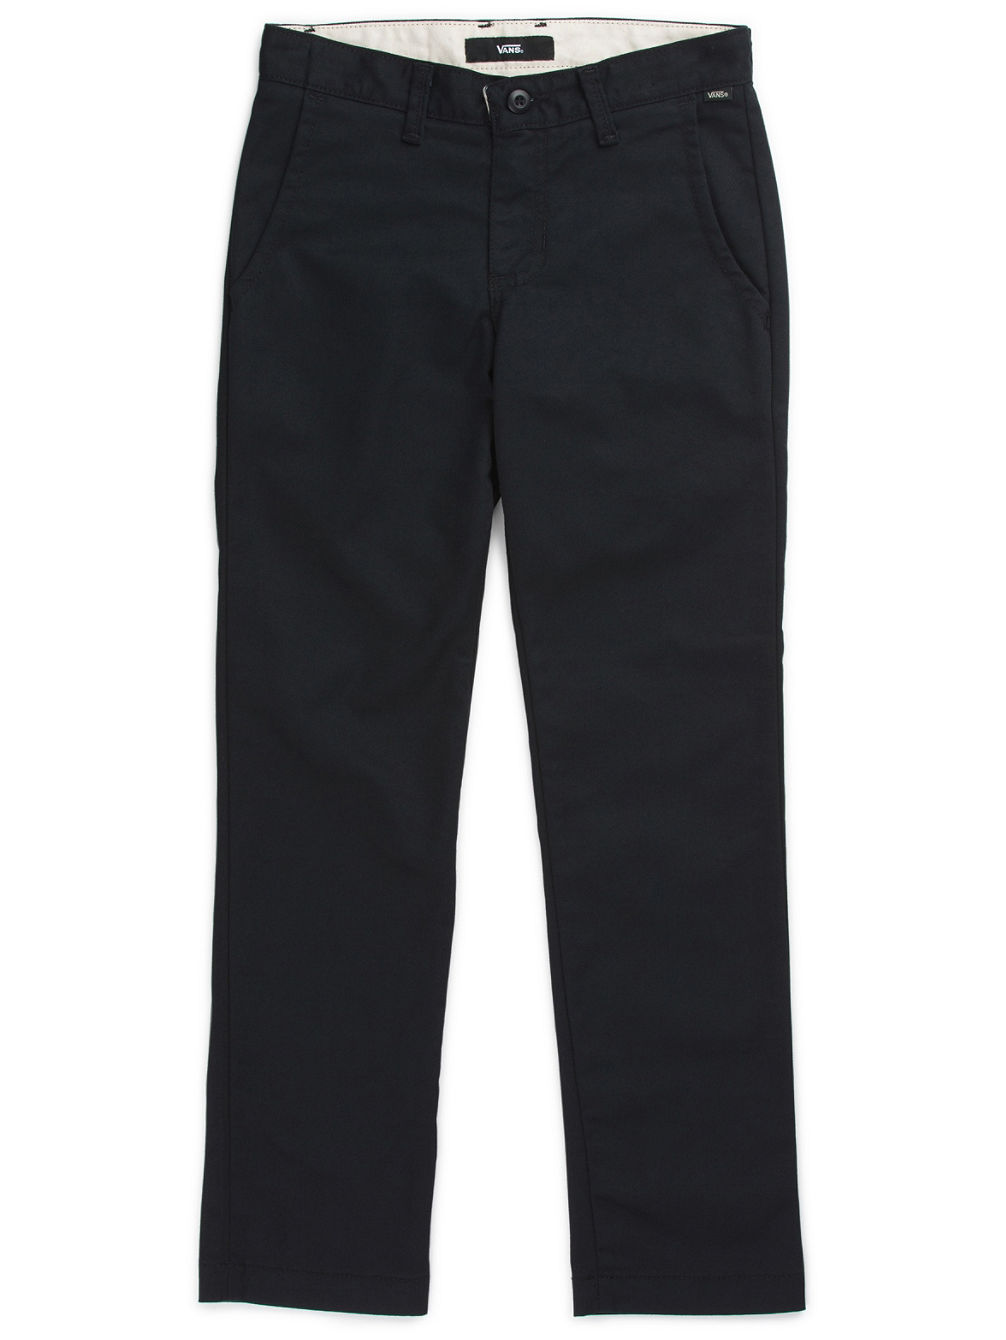 Authentic Chino Stretch Pants Boys